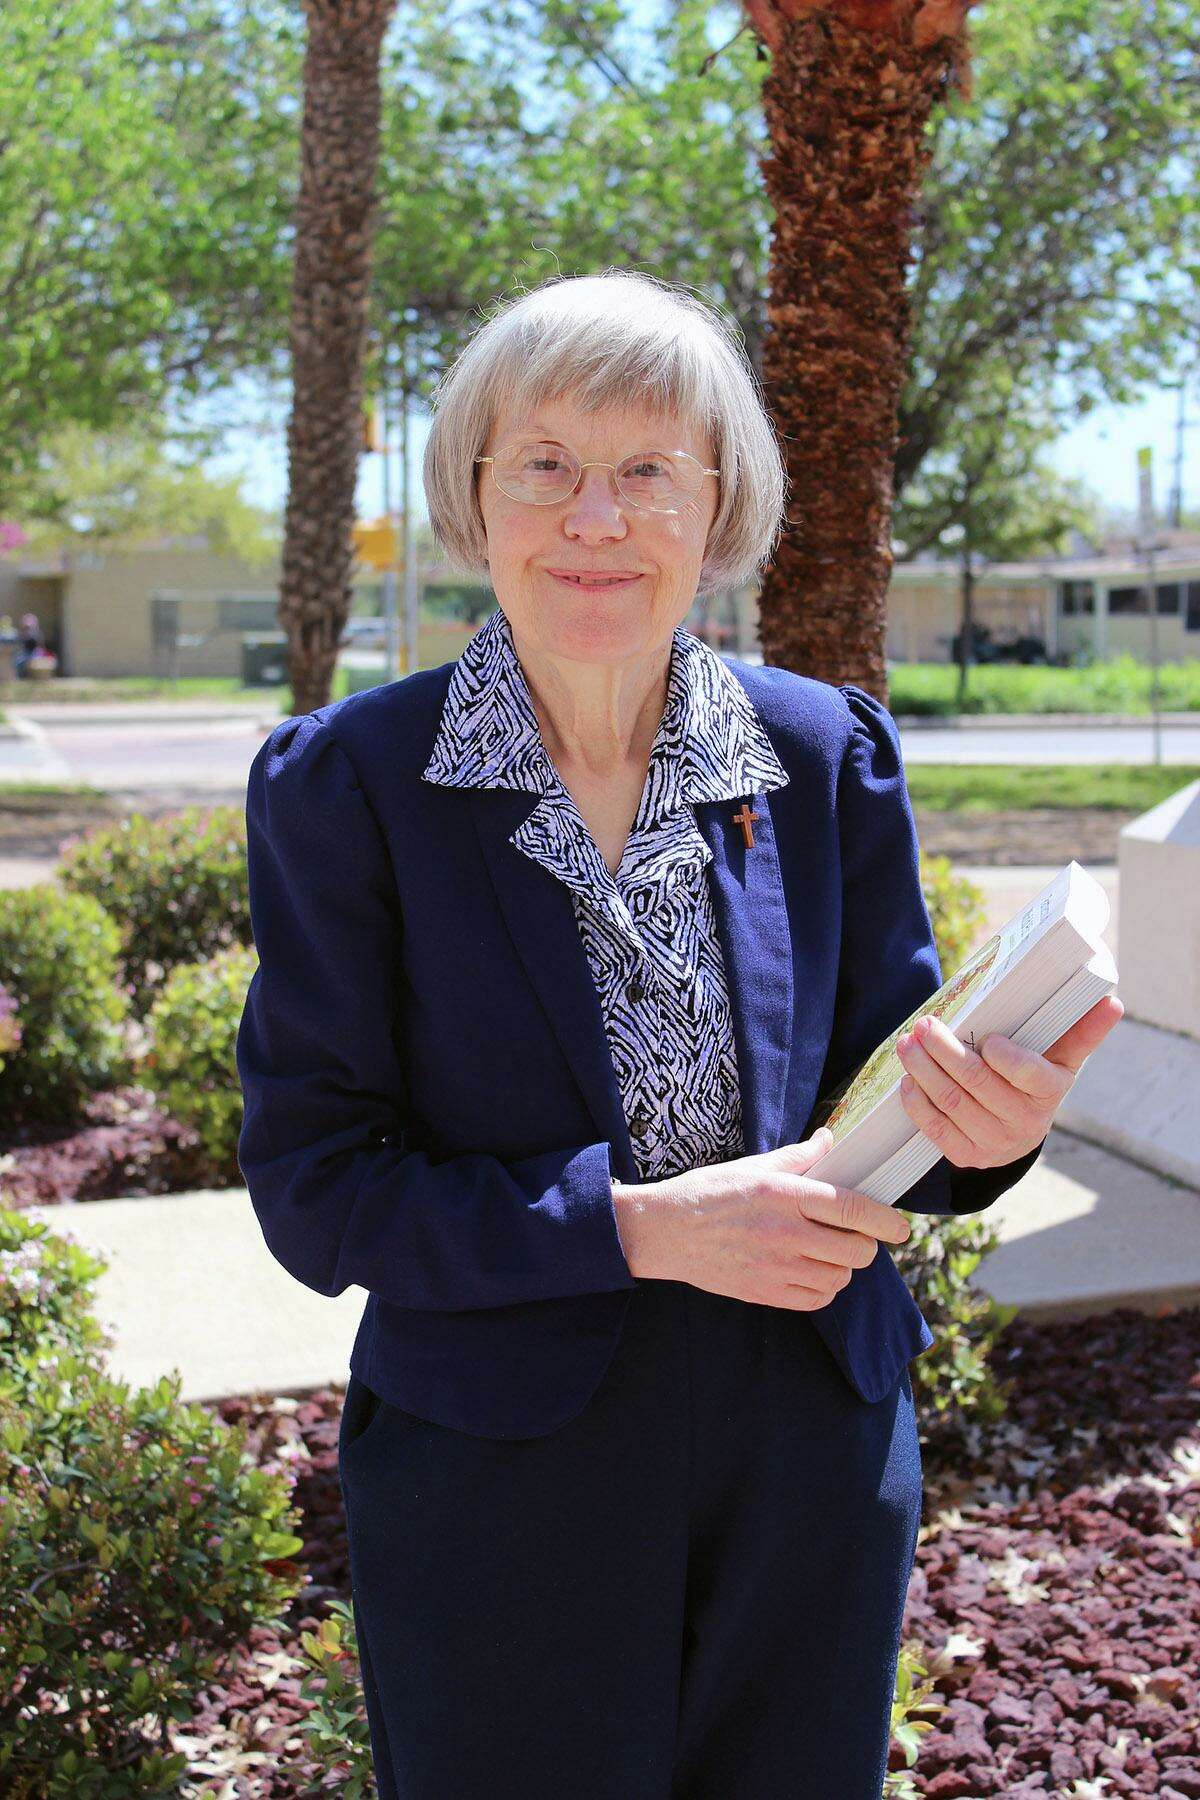 Sister Margit Nagy, a member of the Congregation of Divine Providence, is the last Catholic nun to teach full-time at Our Lady of the Lake University.